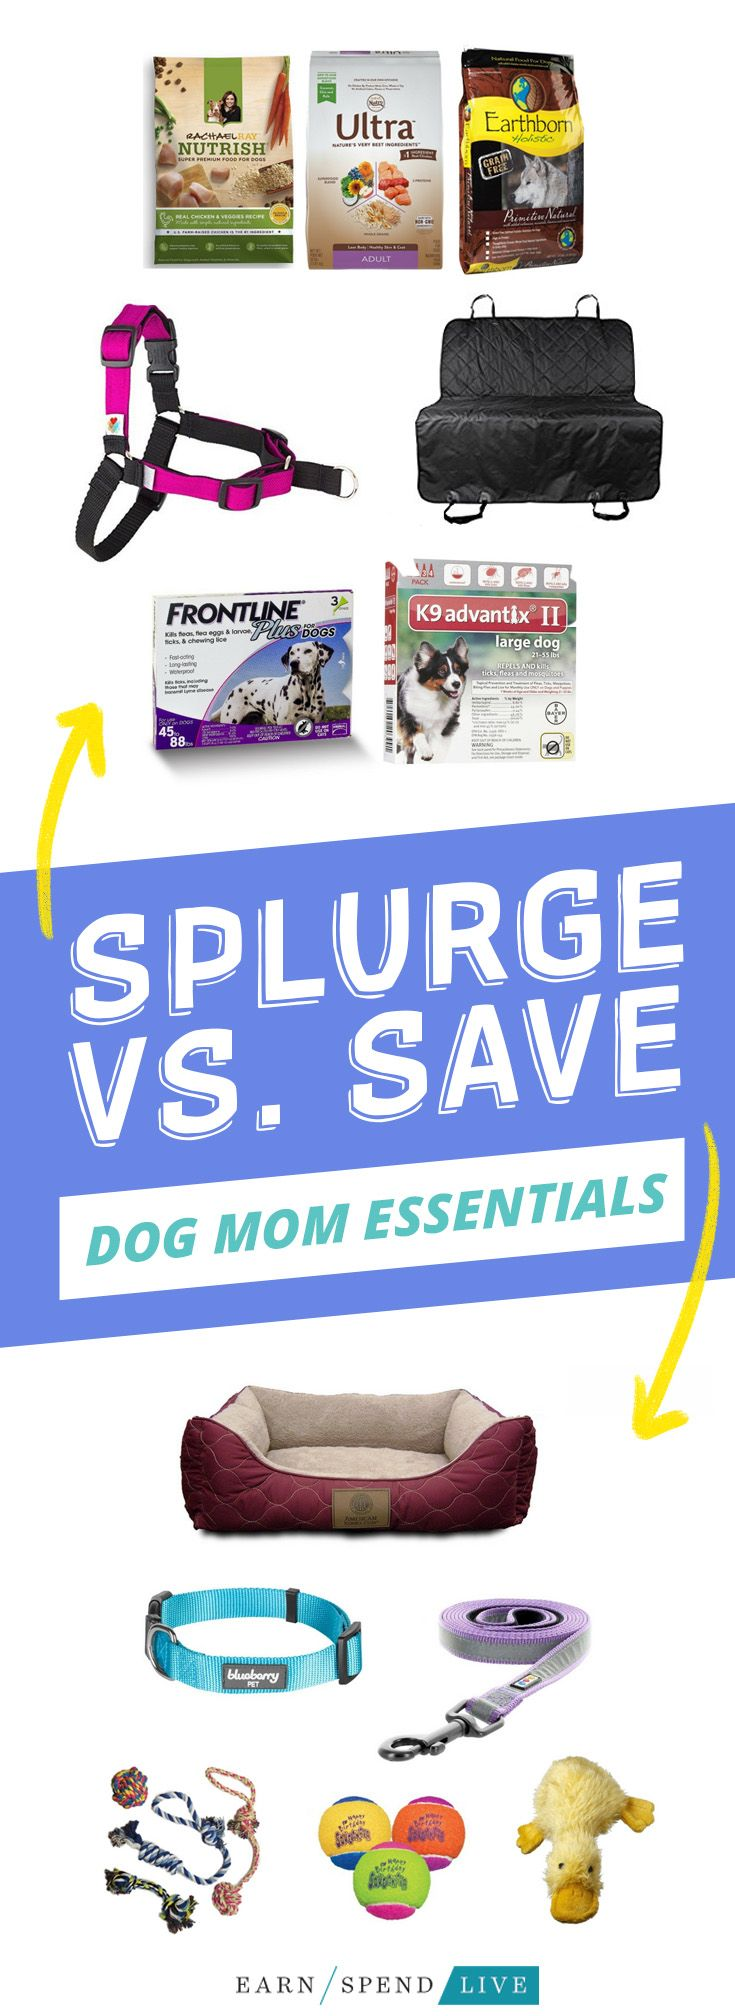 Splurge vs. Save: Dog Mom Essentials